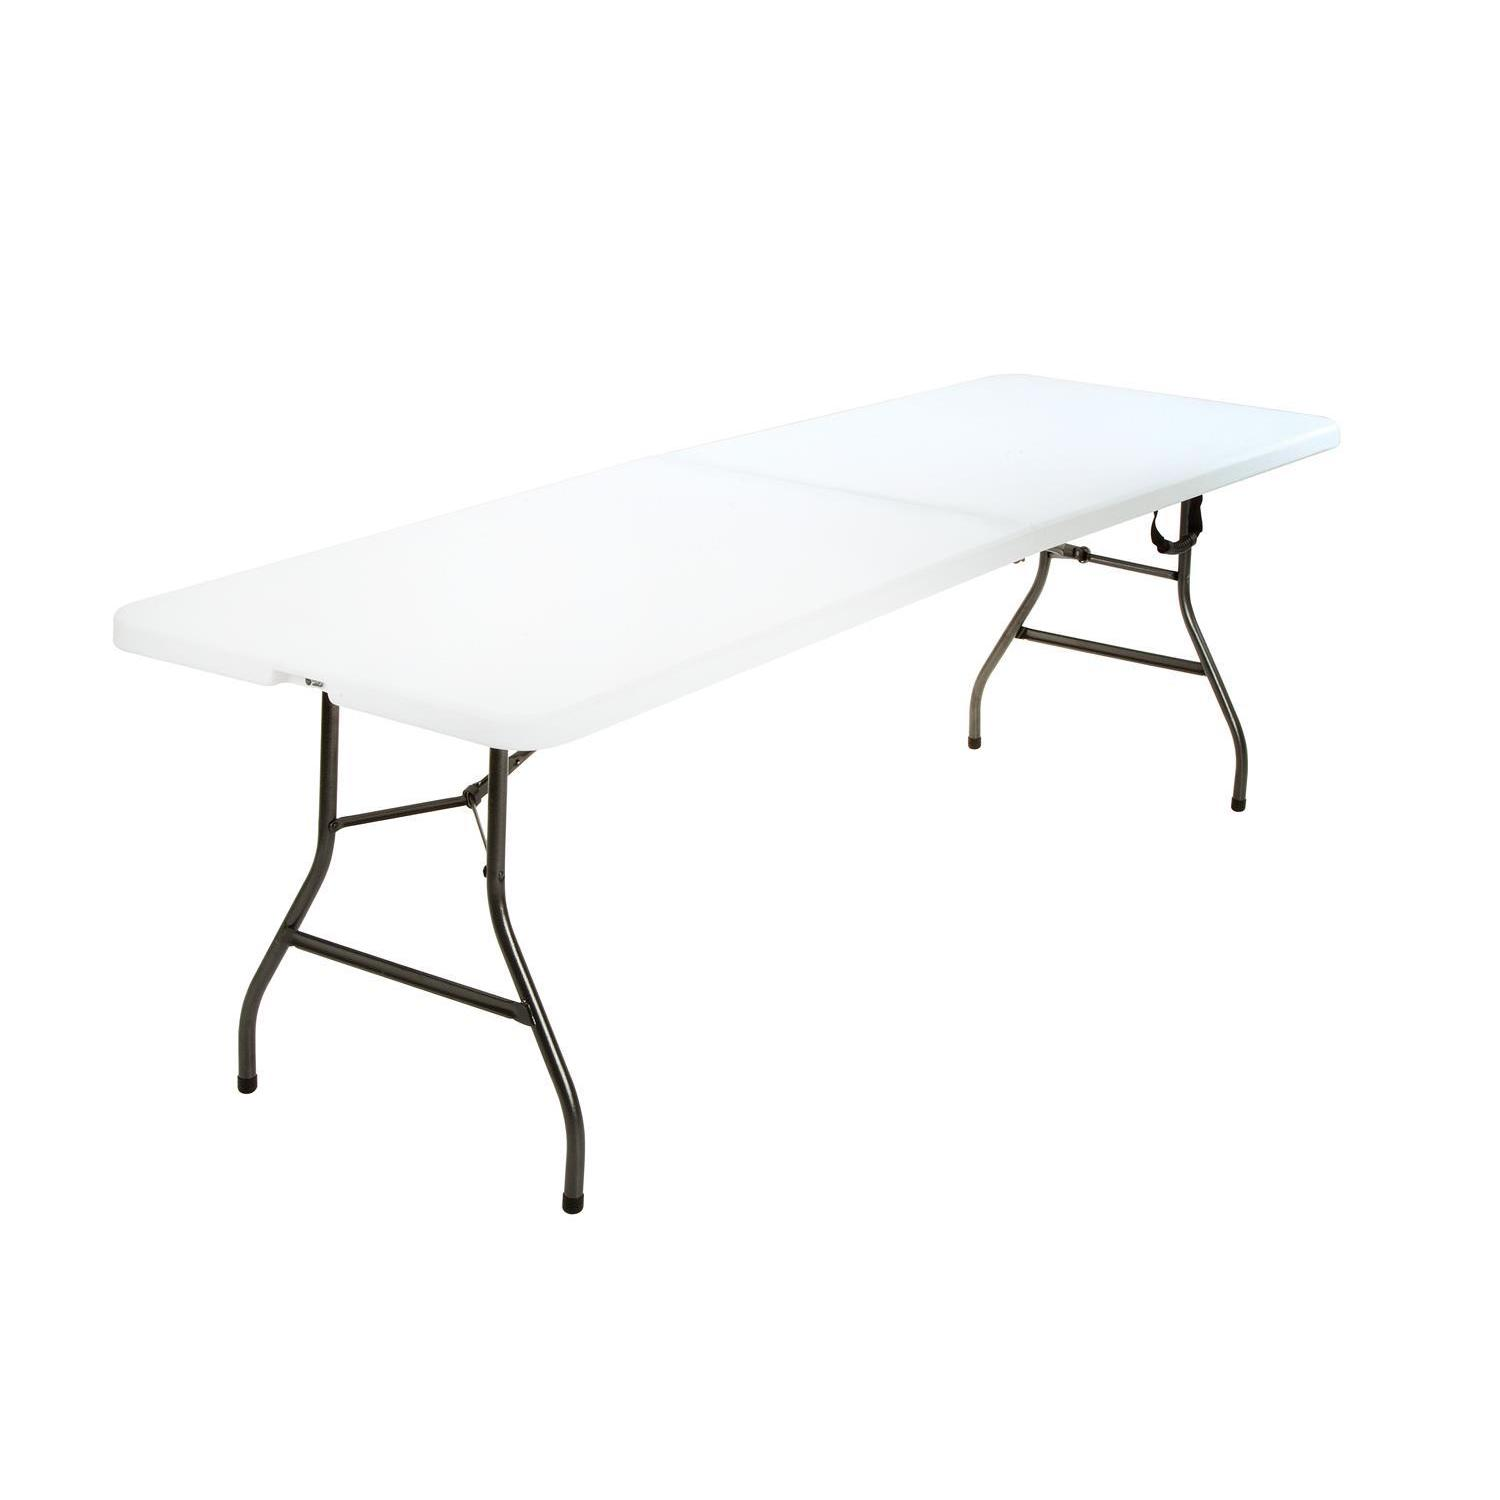 Attirant Shop COSCO Deluxe 8 Foot X 30 Inch Fold In Half Blow Molded Folding Table    Free Shipping Today   Overstock.com   15926255